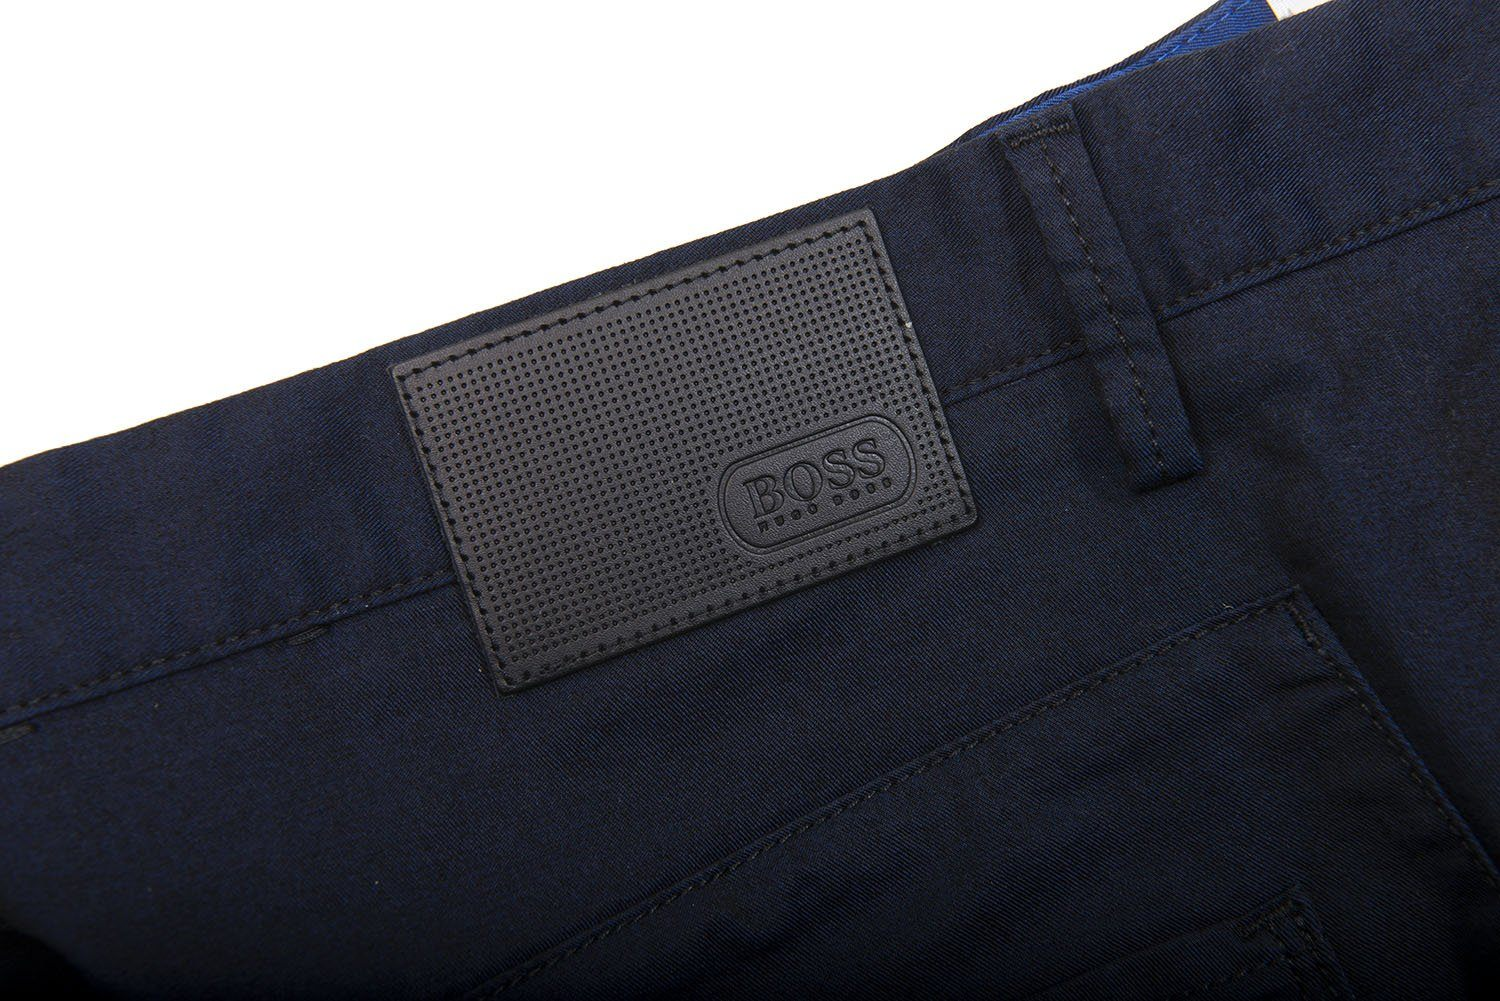 BOSS Athleisure Lester-20 Chino Trousers in Black/Blue